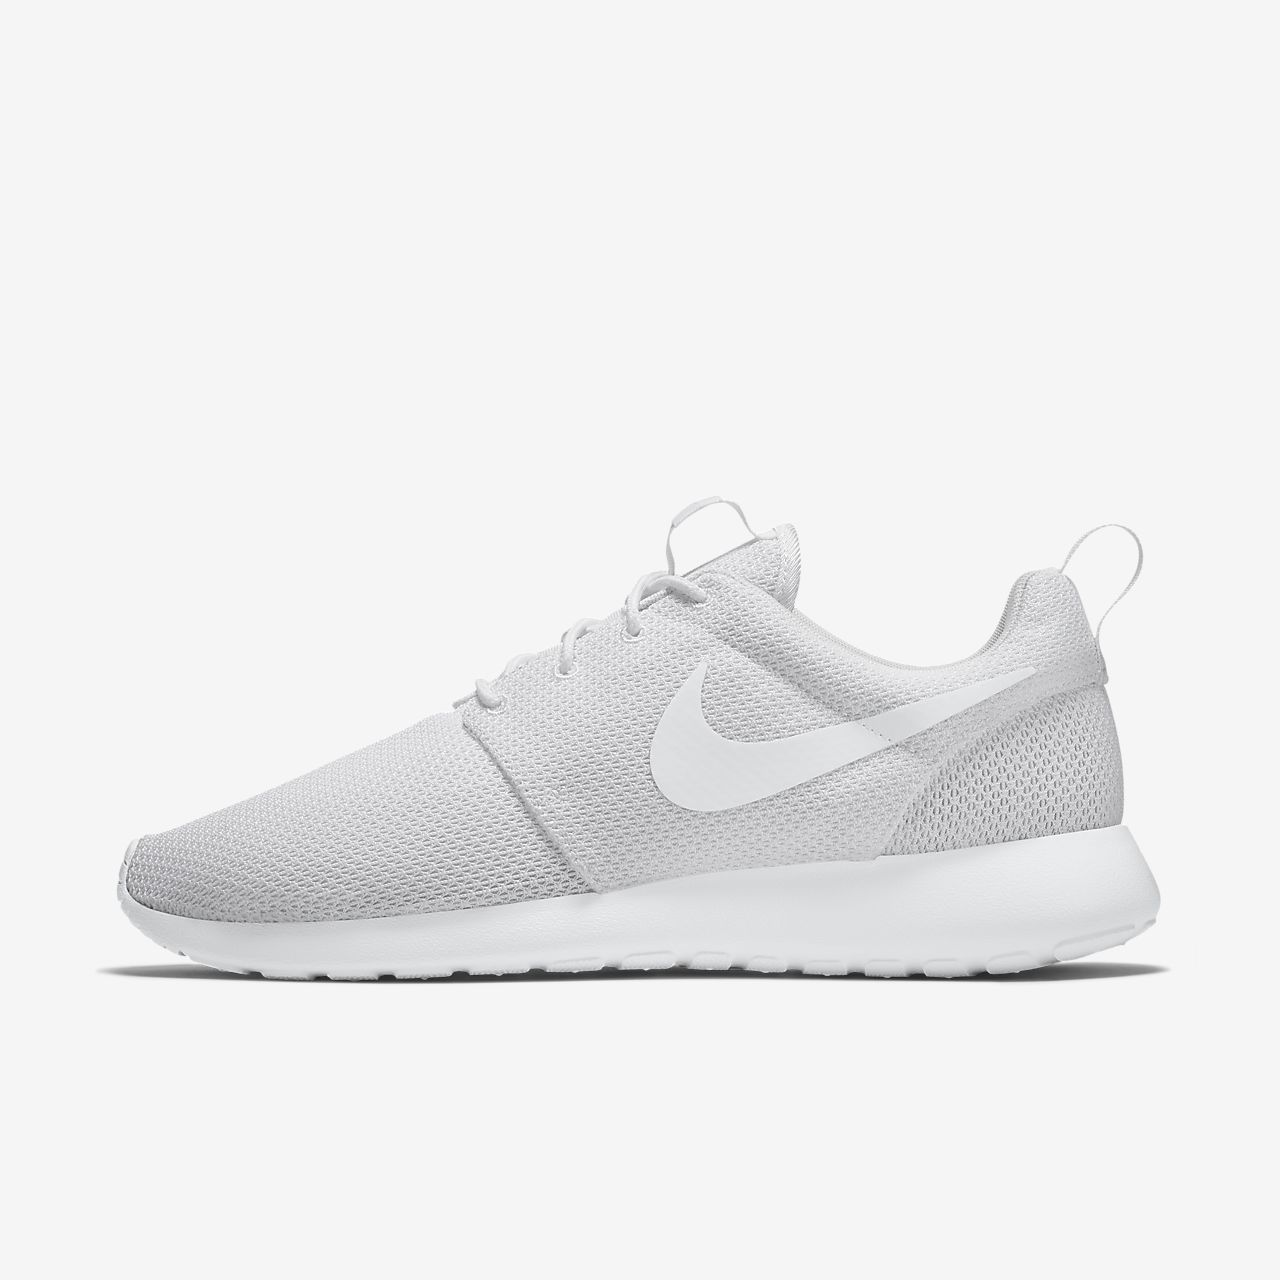 5280142132d9 Nike Roshe One Men s Shoe. Nike.com